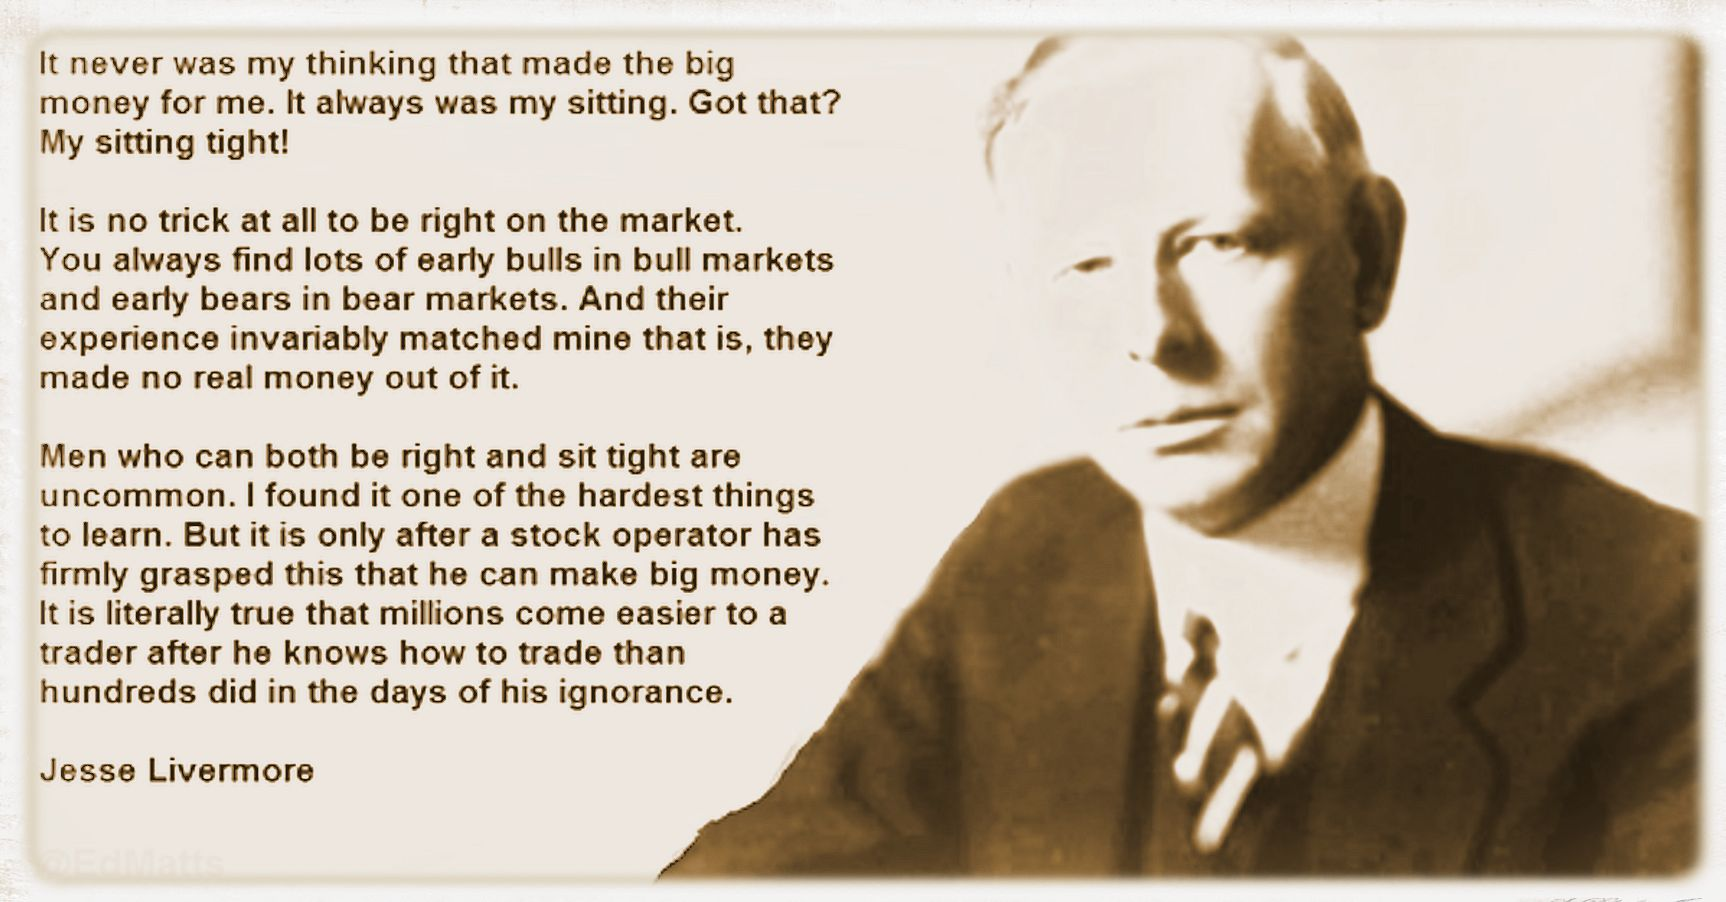 The Wisdom of Jesse Livermore